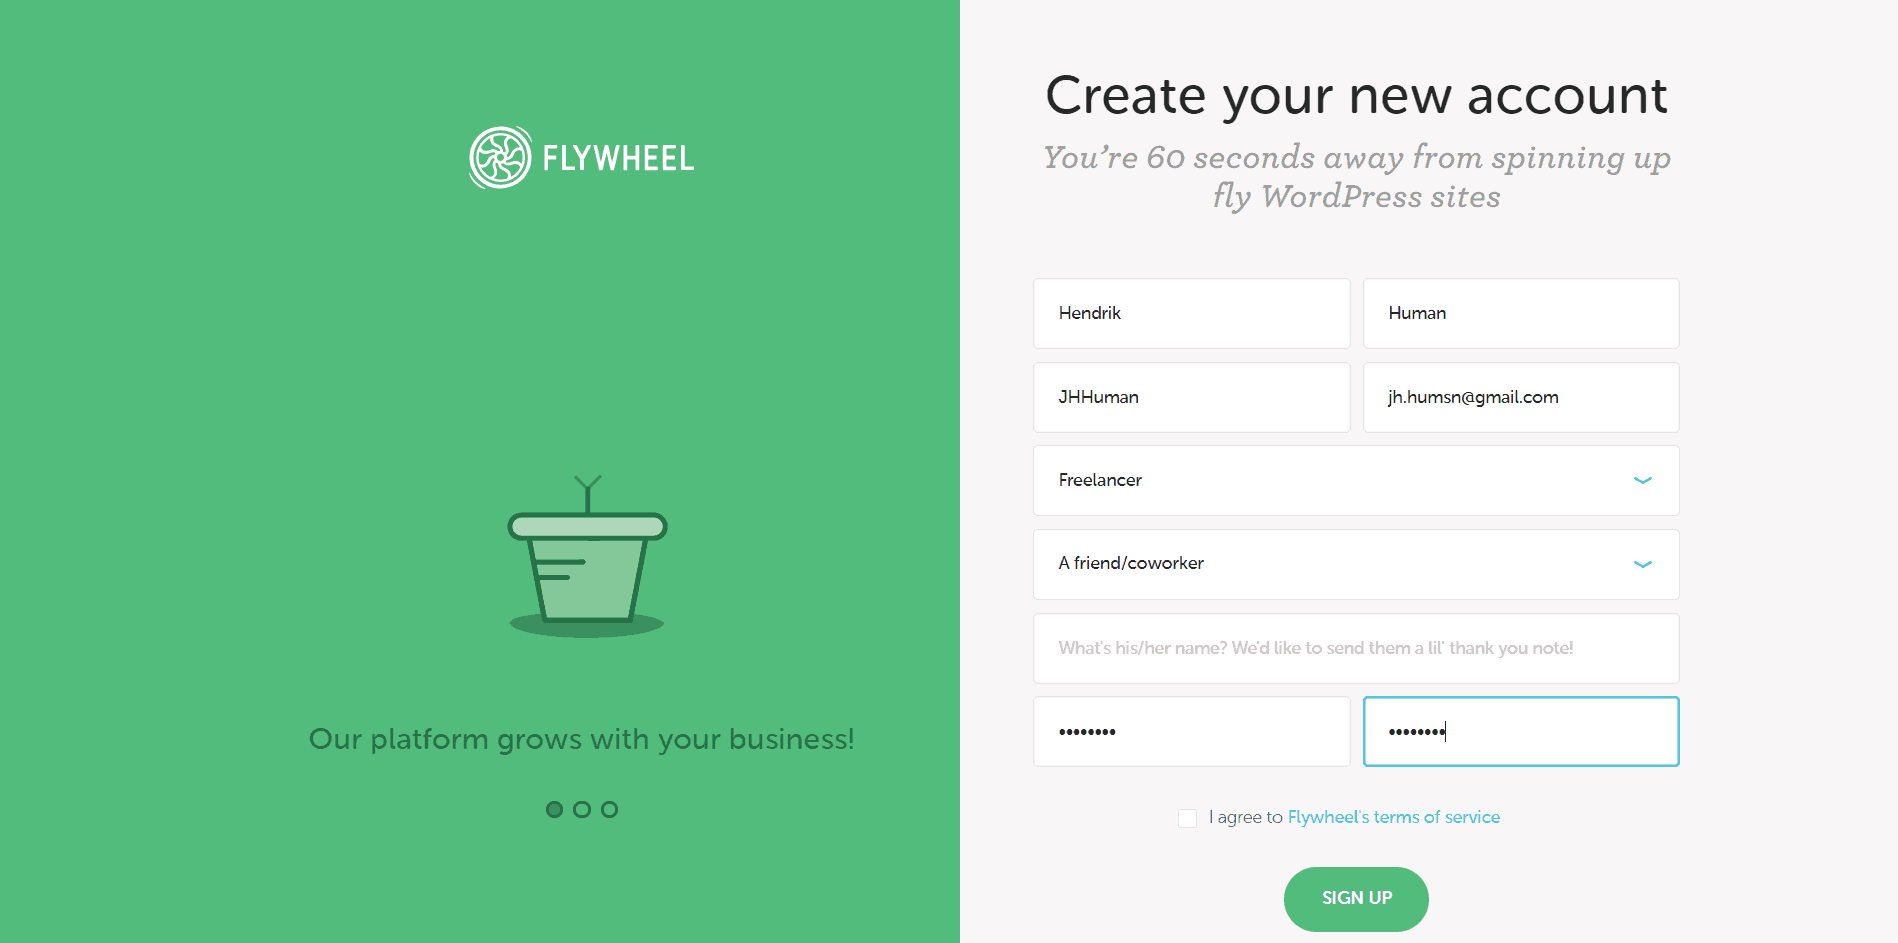 How-to-Create-a-New-Account-with-Flywheel-image1